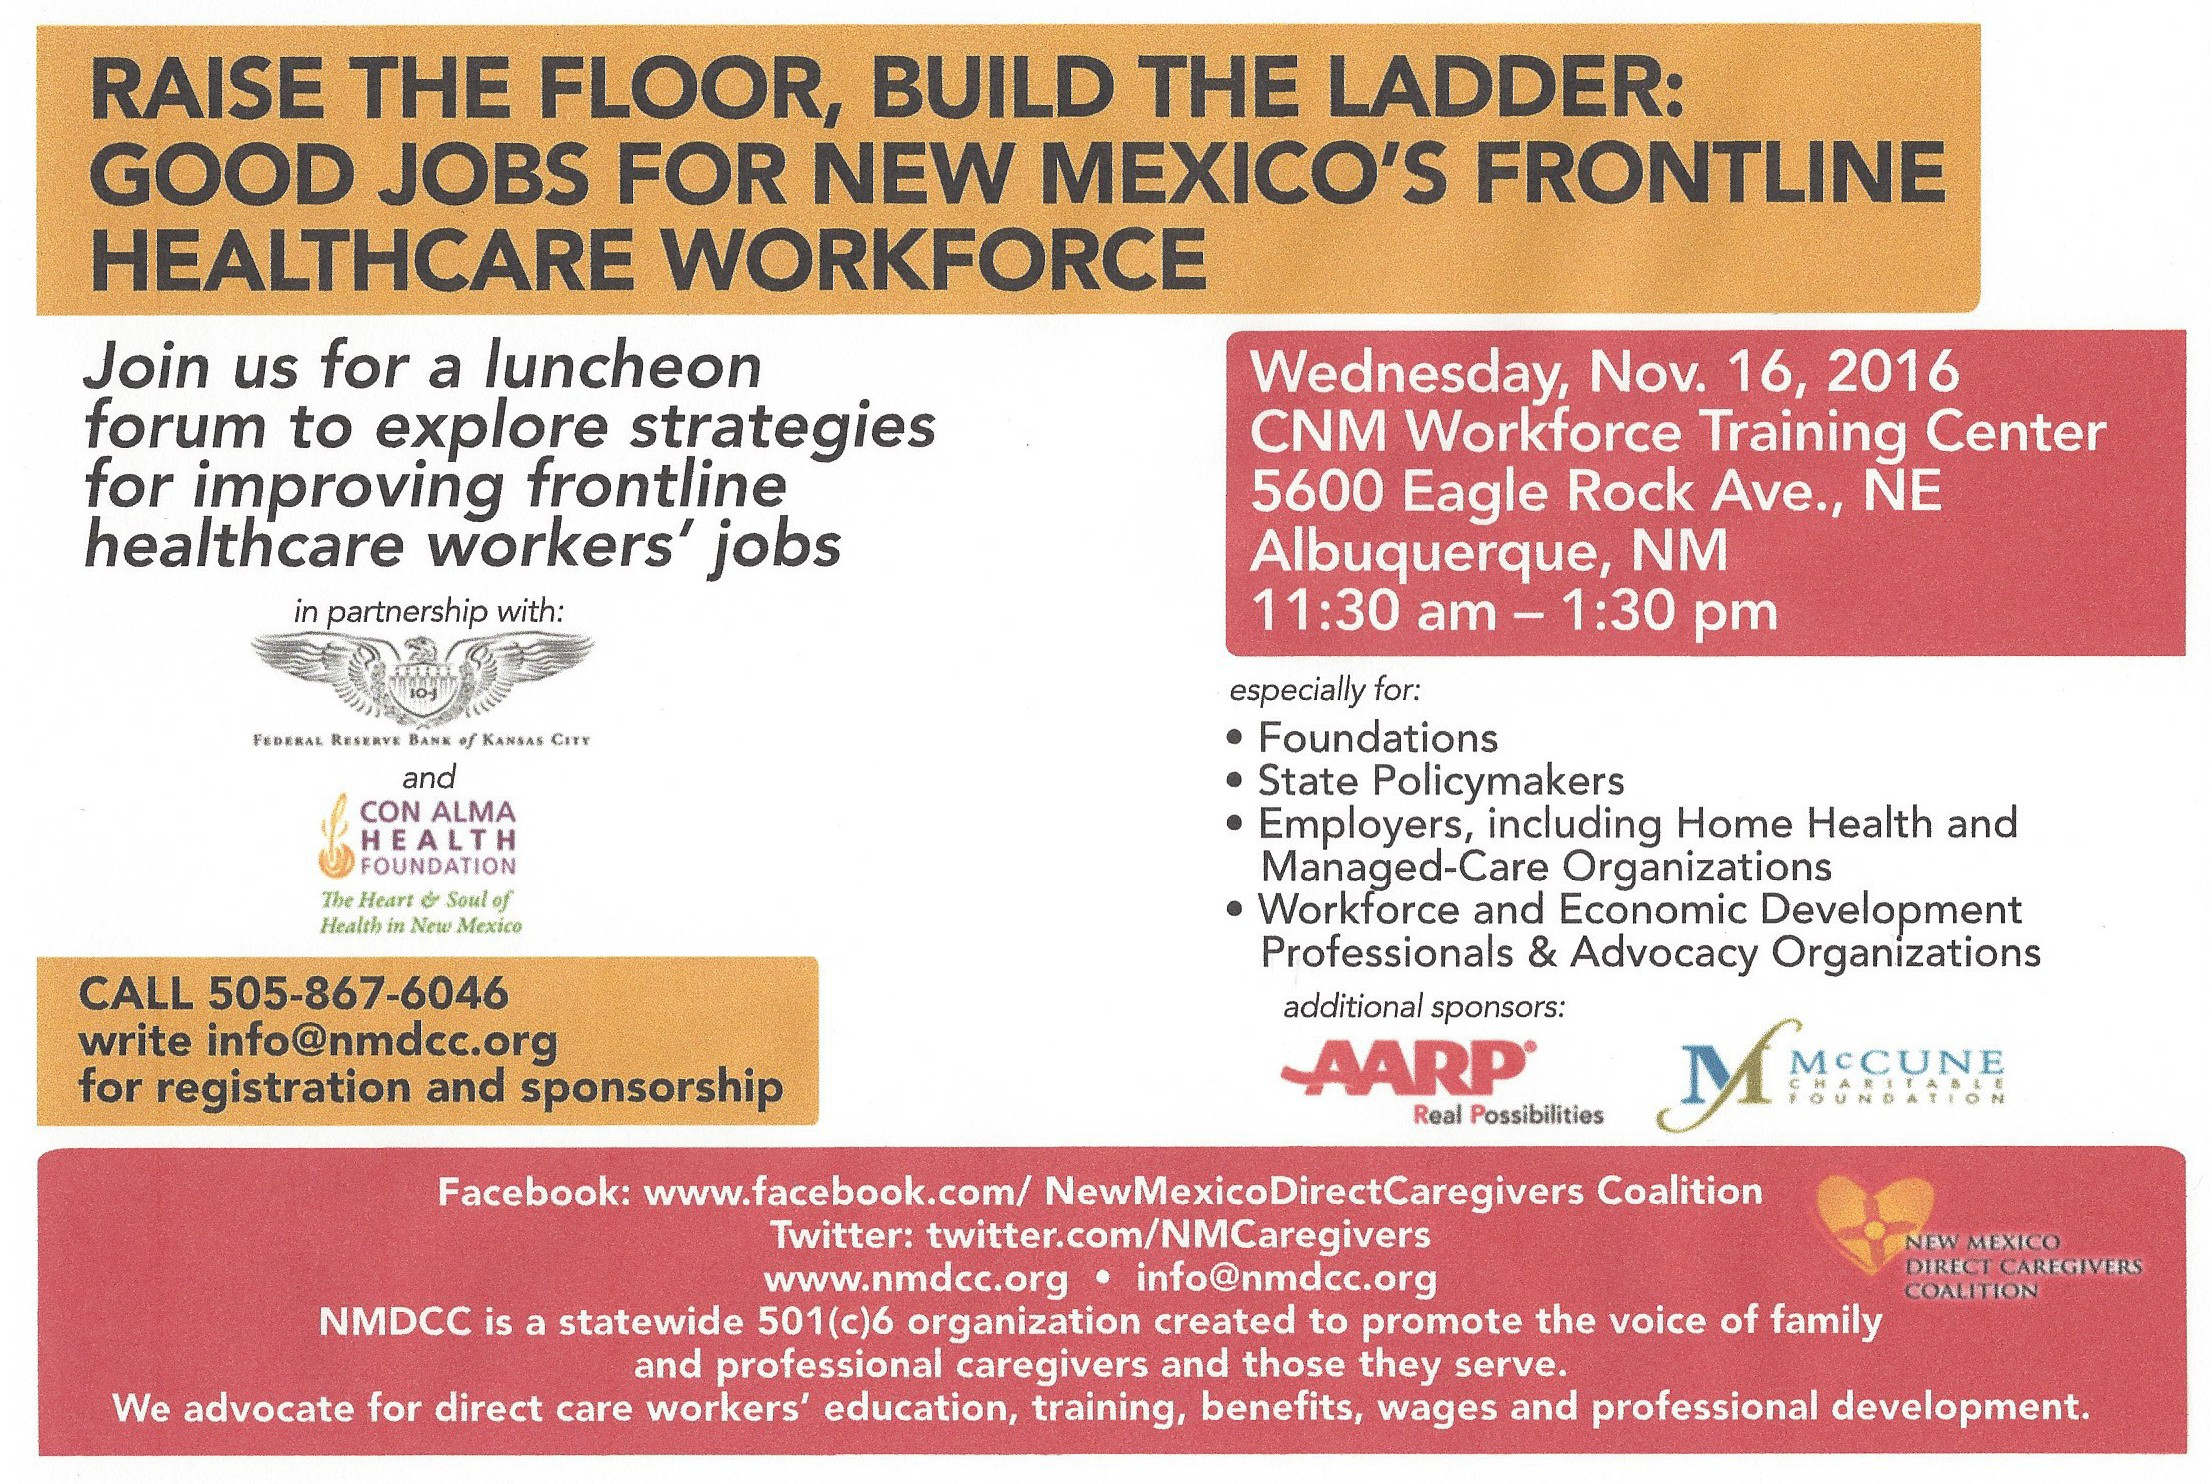 Raise the Floor, Build the Ladder | New Mexico Direct